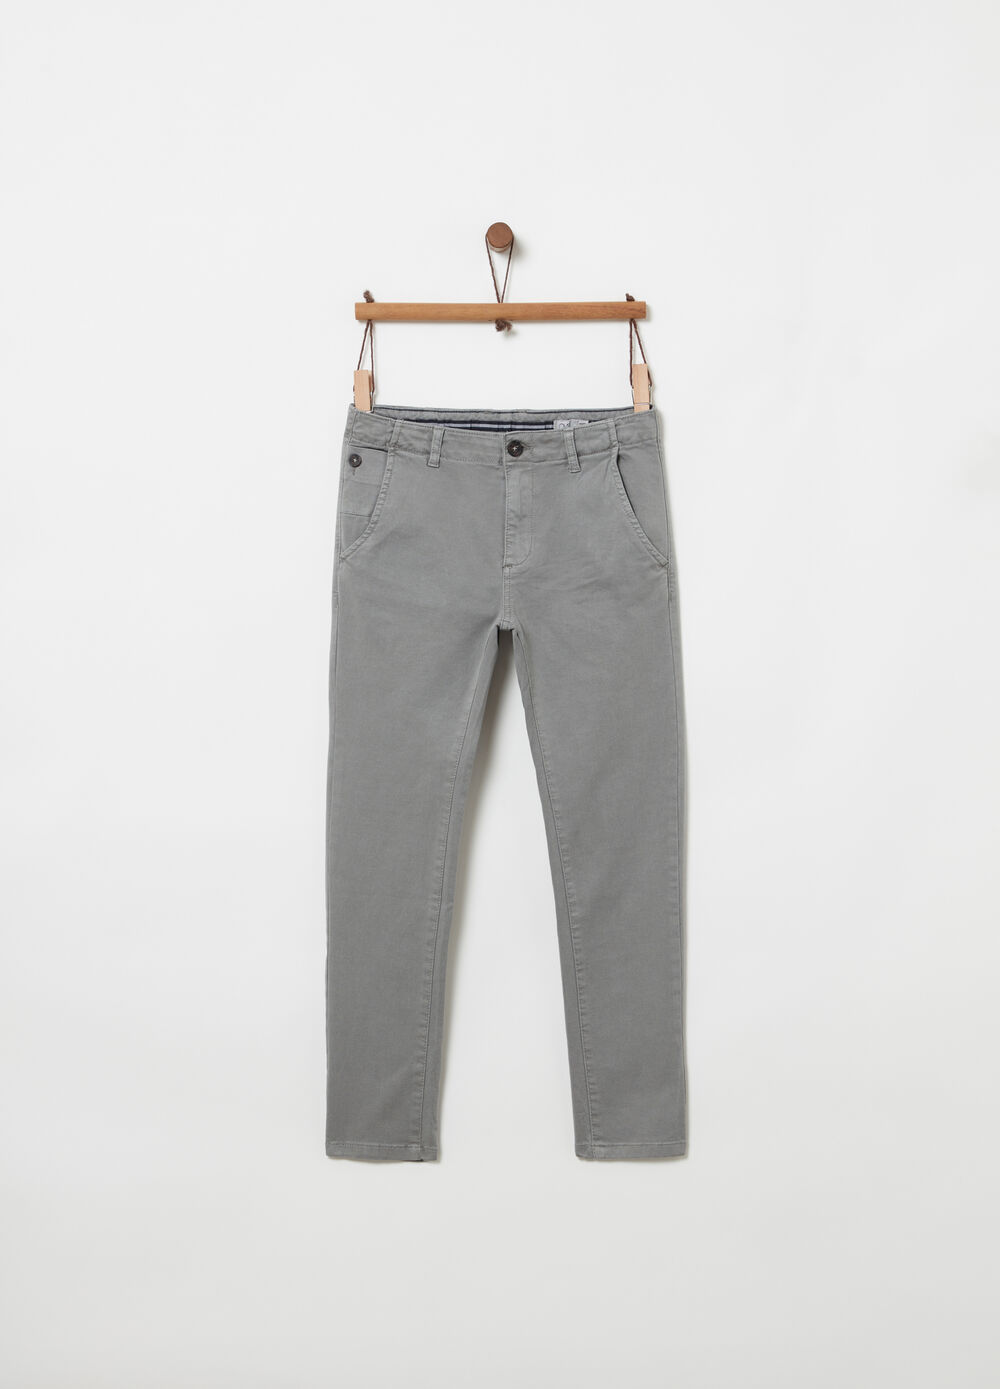 Solid colour, yarn-dyed and textured slim-fit chinos